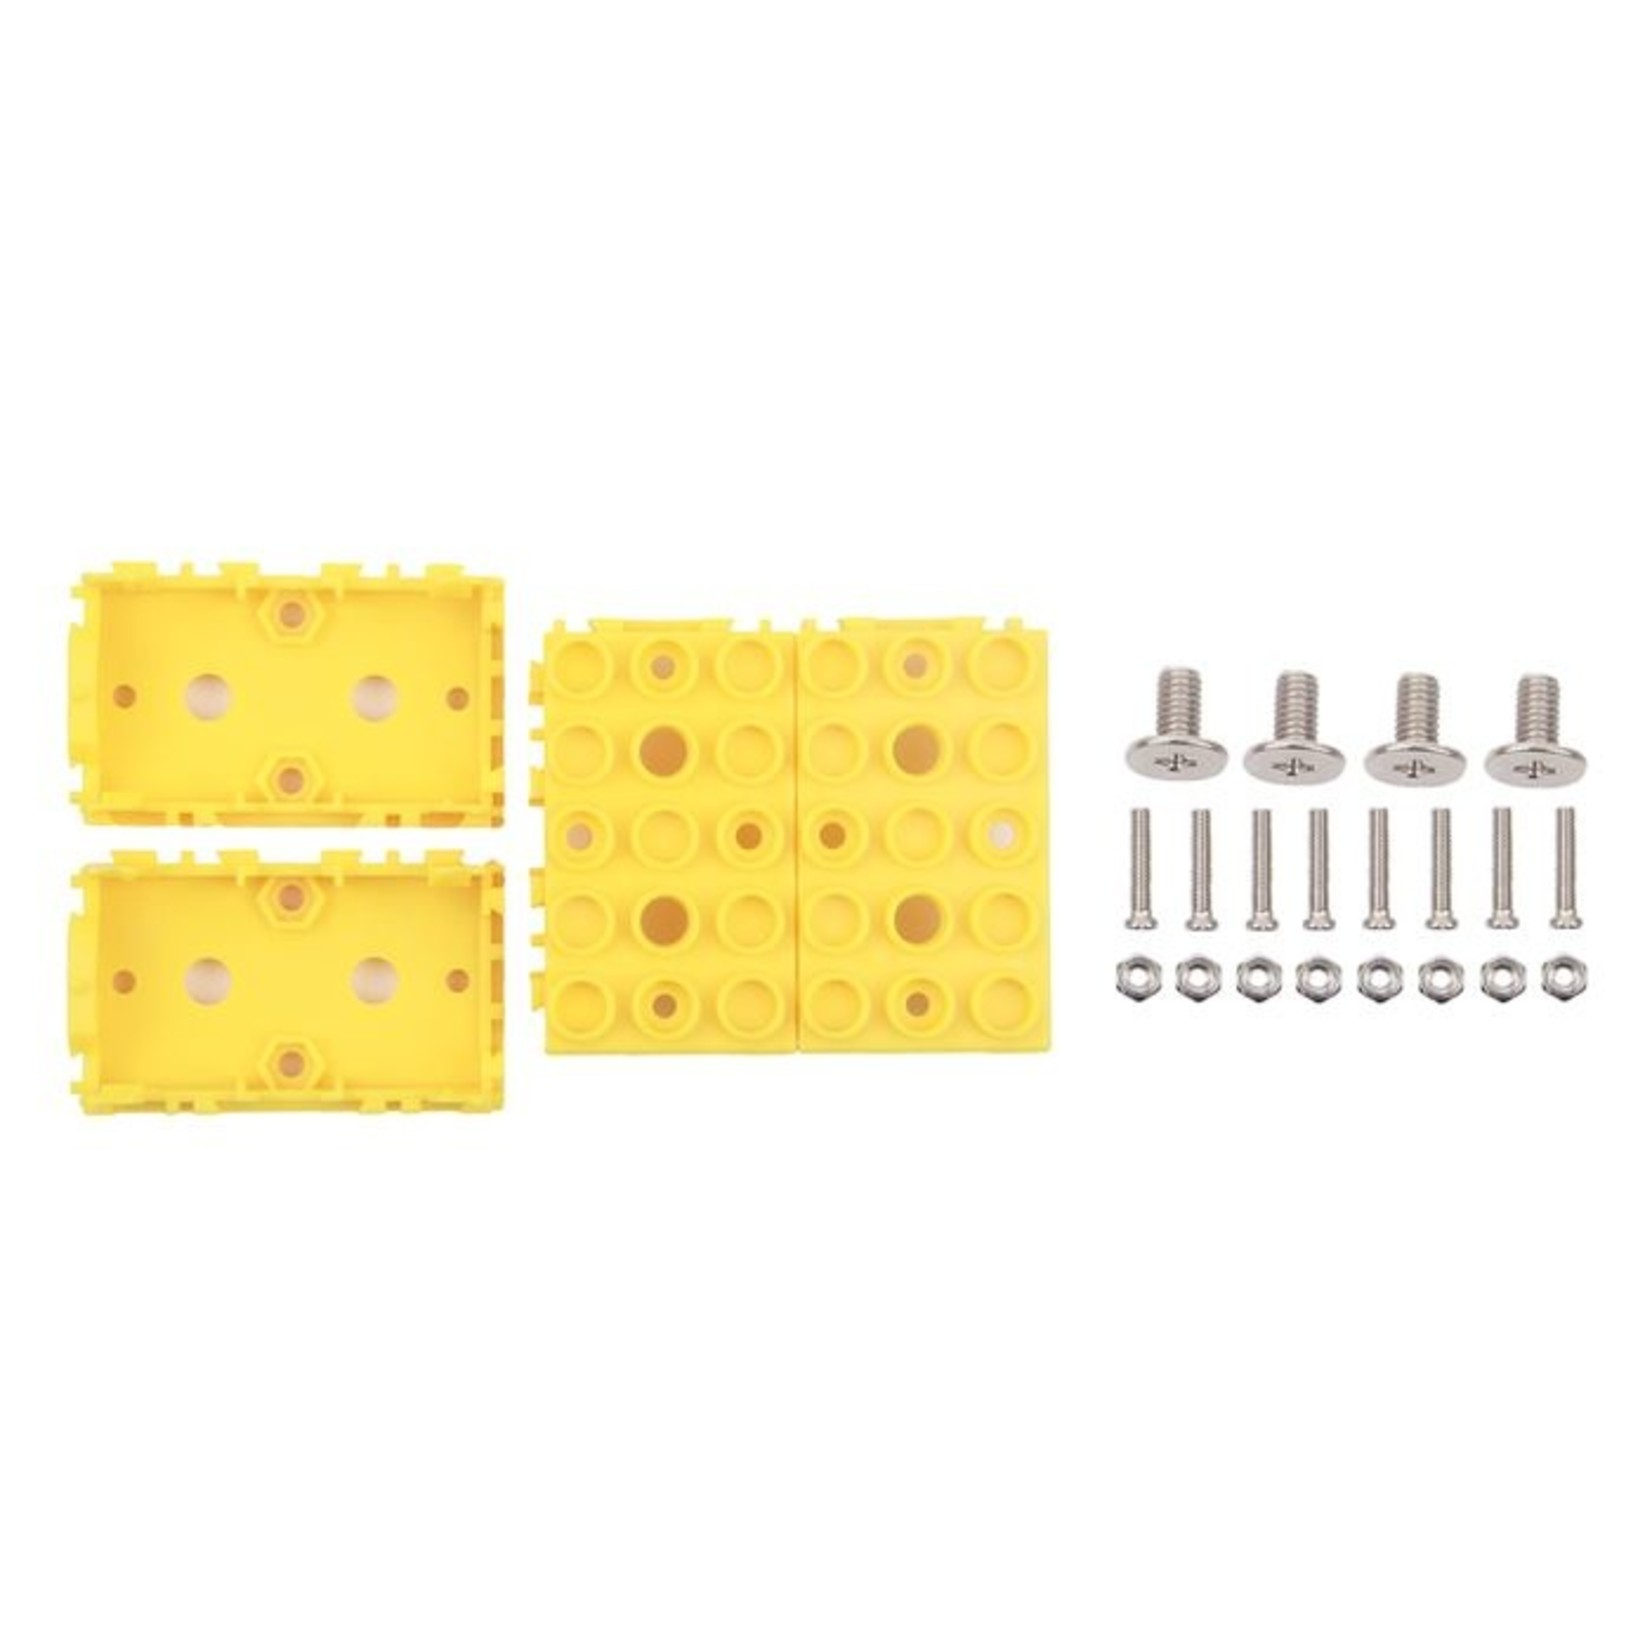 Seeed Grove - Yellow Wrapper 1*2 (4-pack)